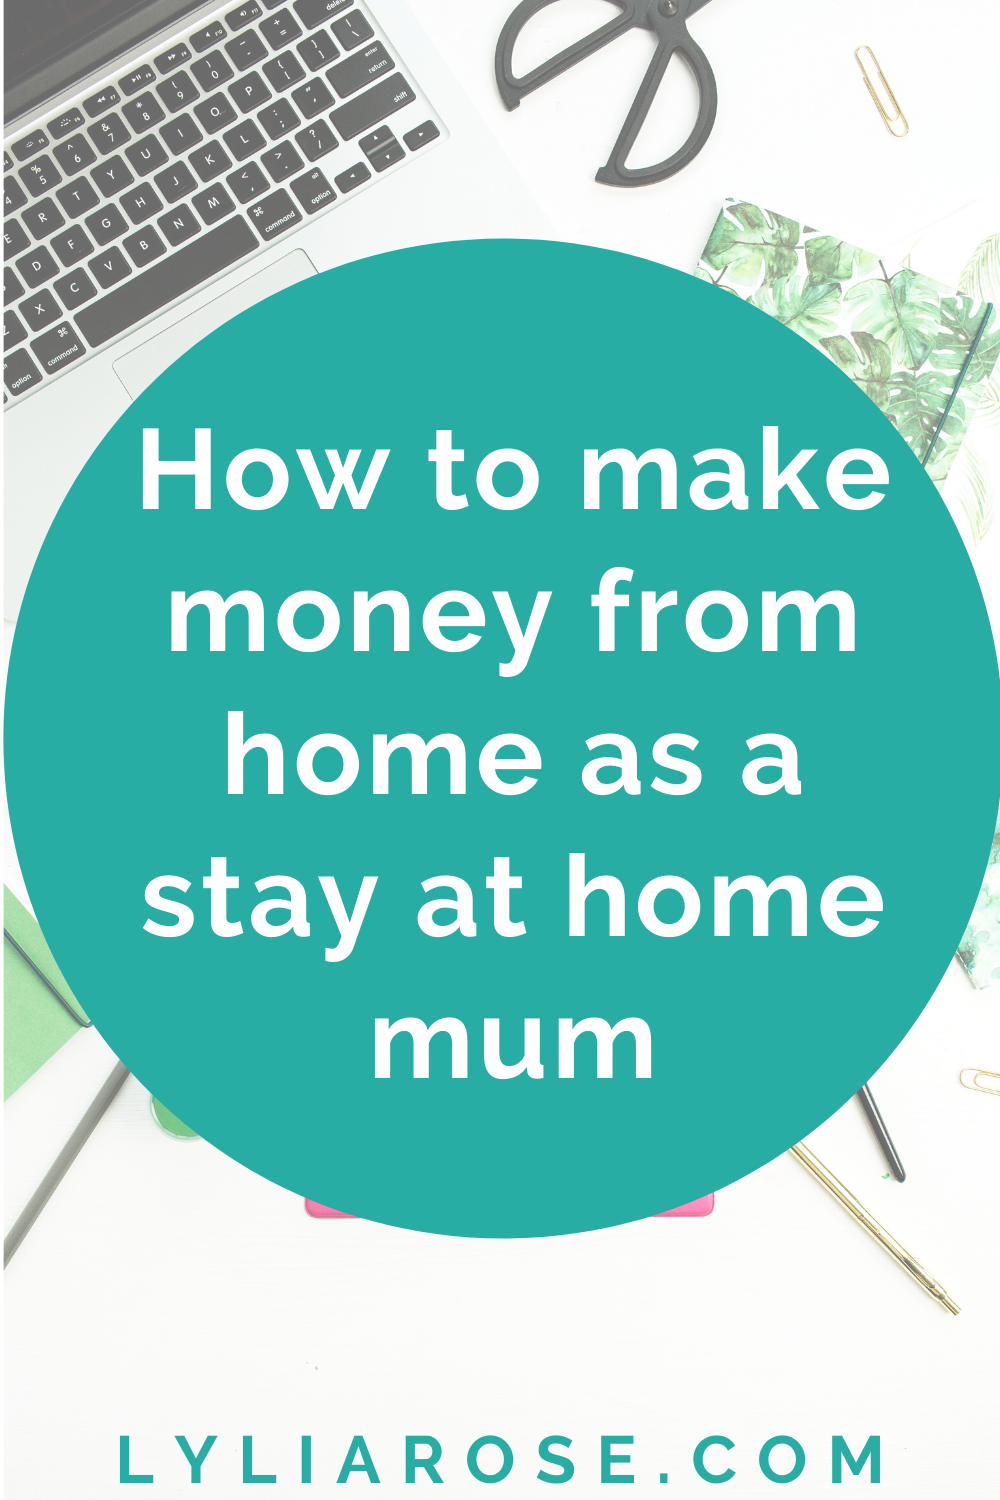 How to make money from home as a stay at home mum